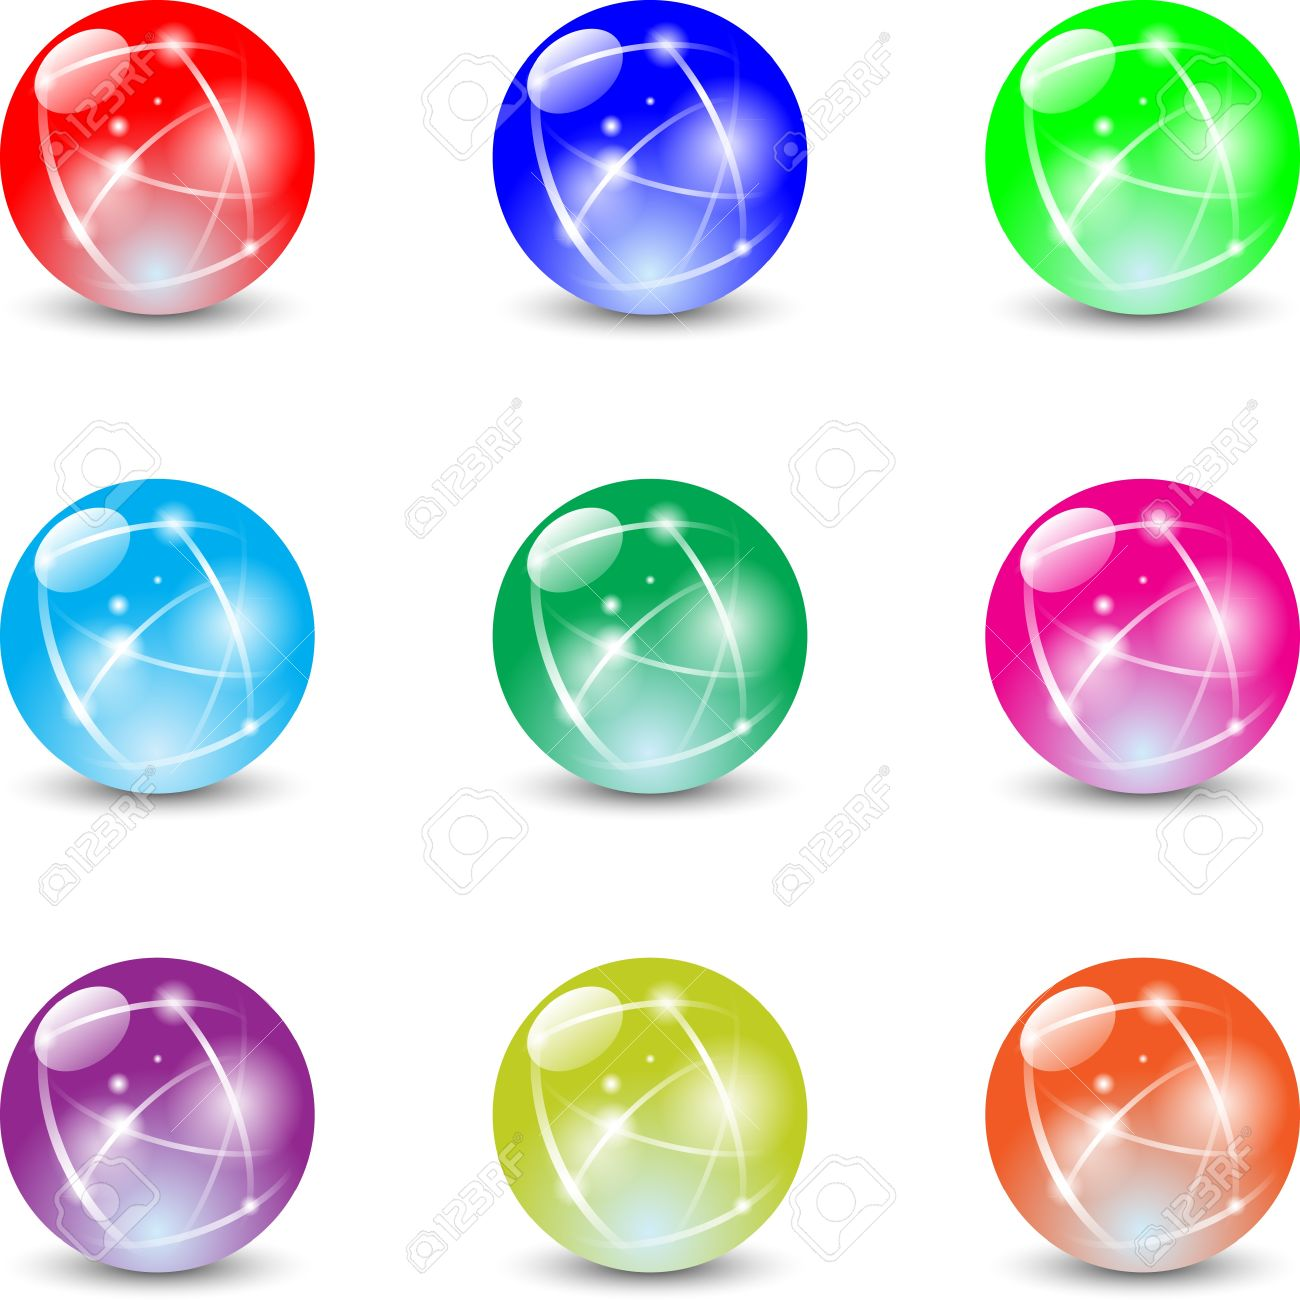 marbles Stock Vector - 12177613